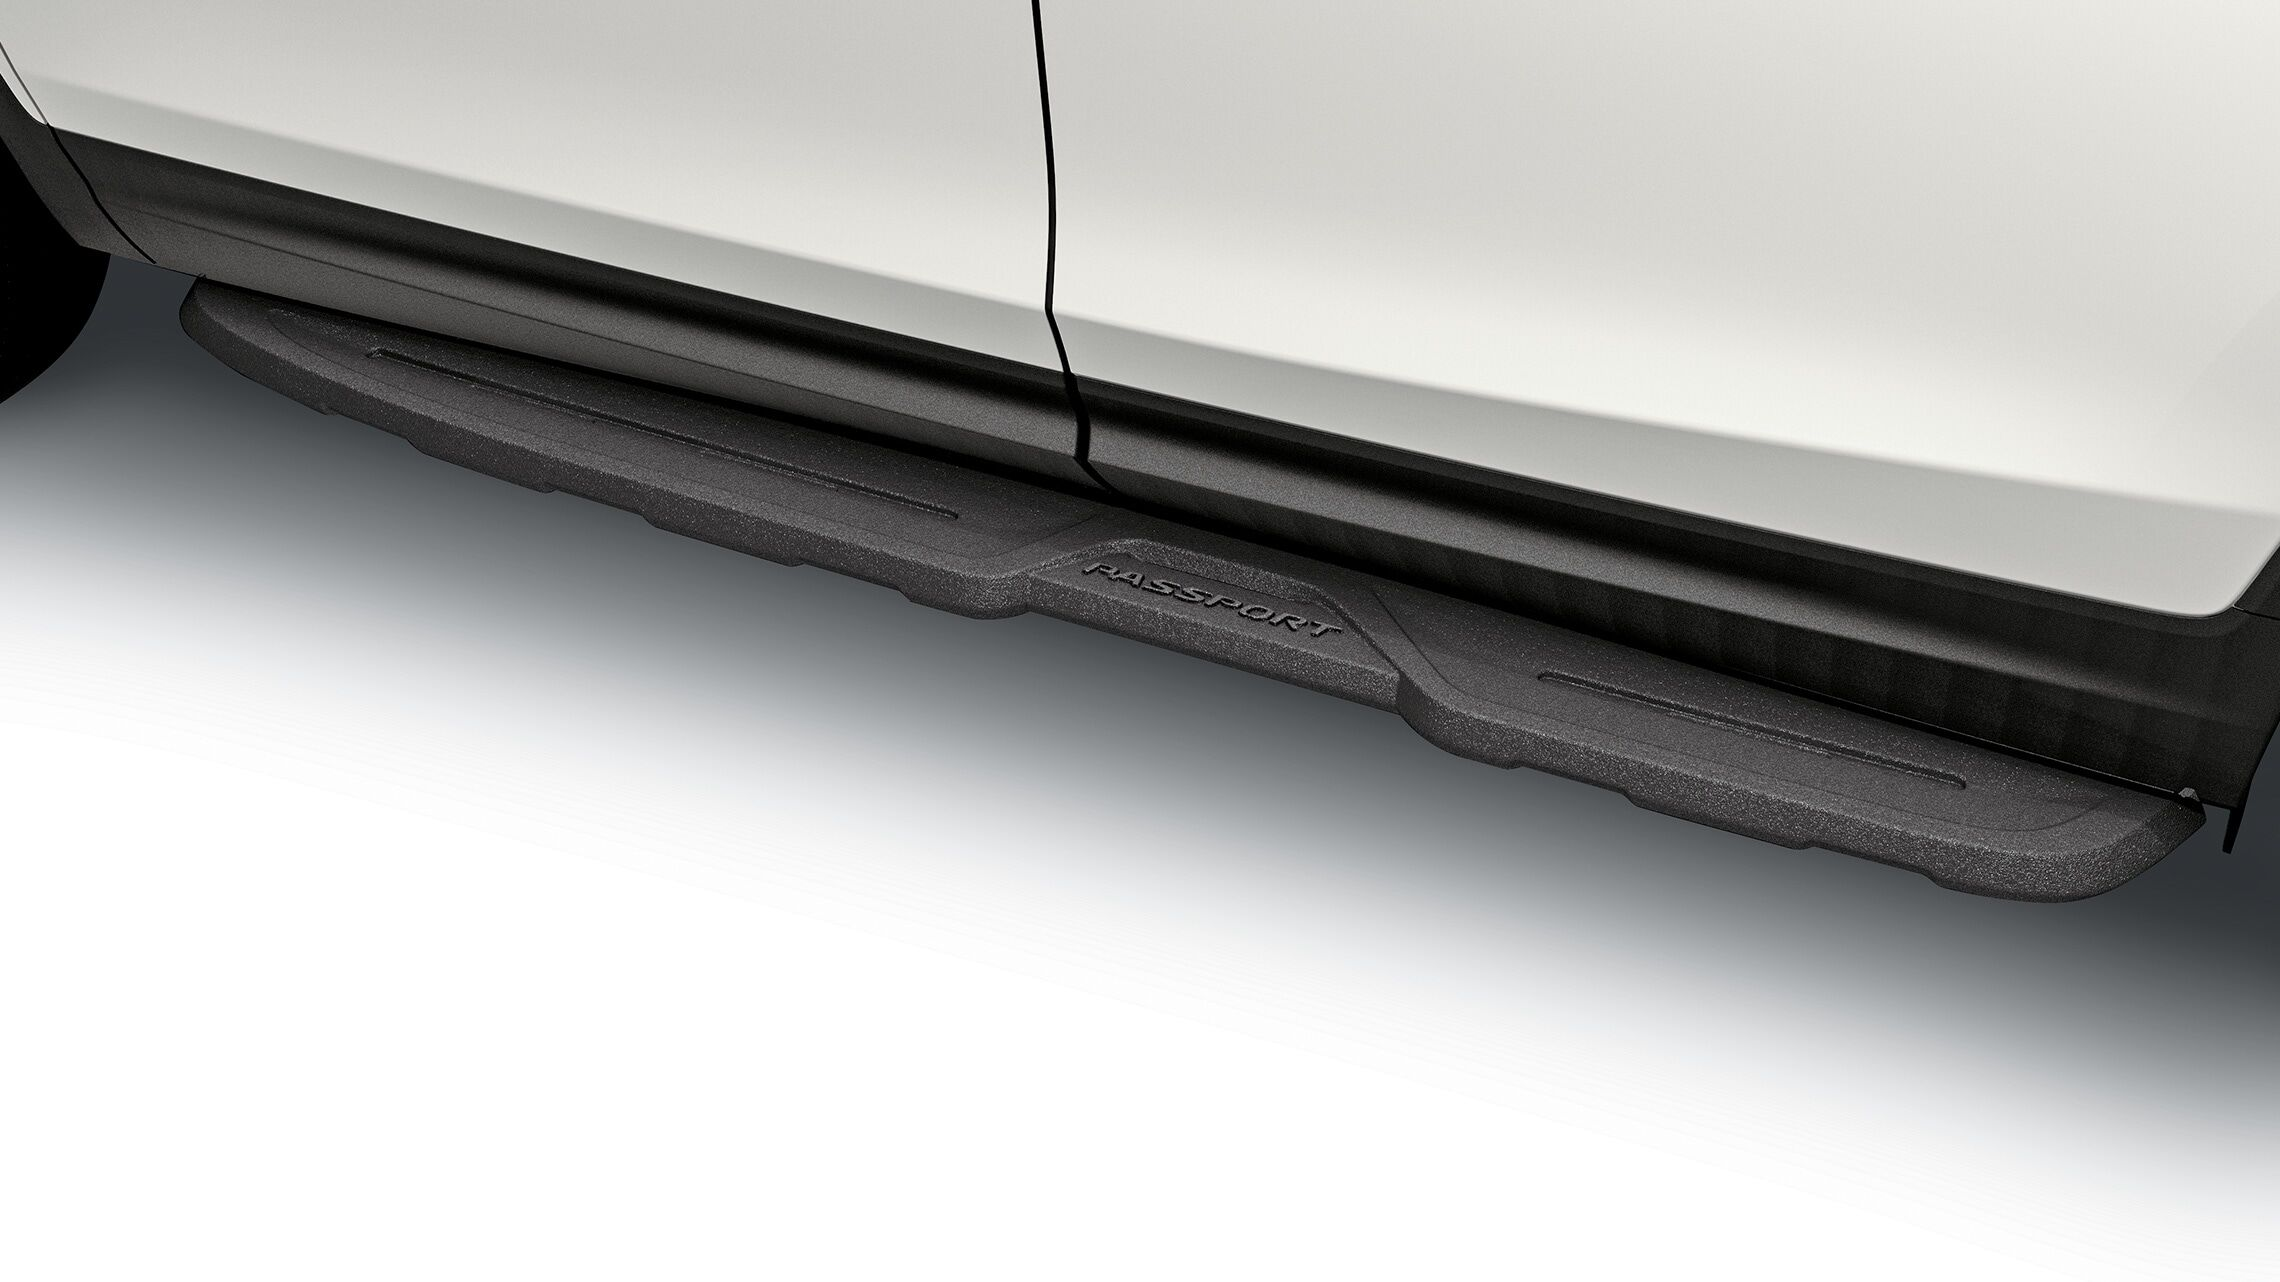 Honda Passport Accessory - Aluminum Running Boards